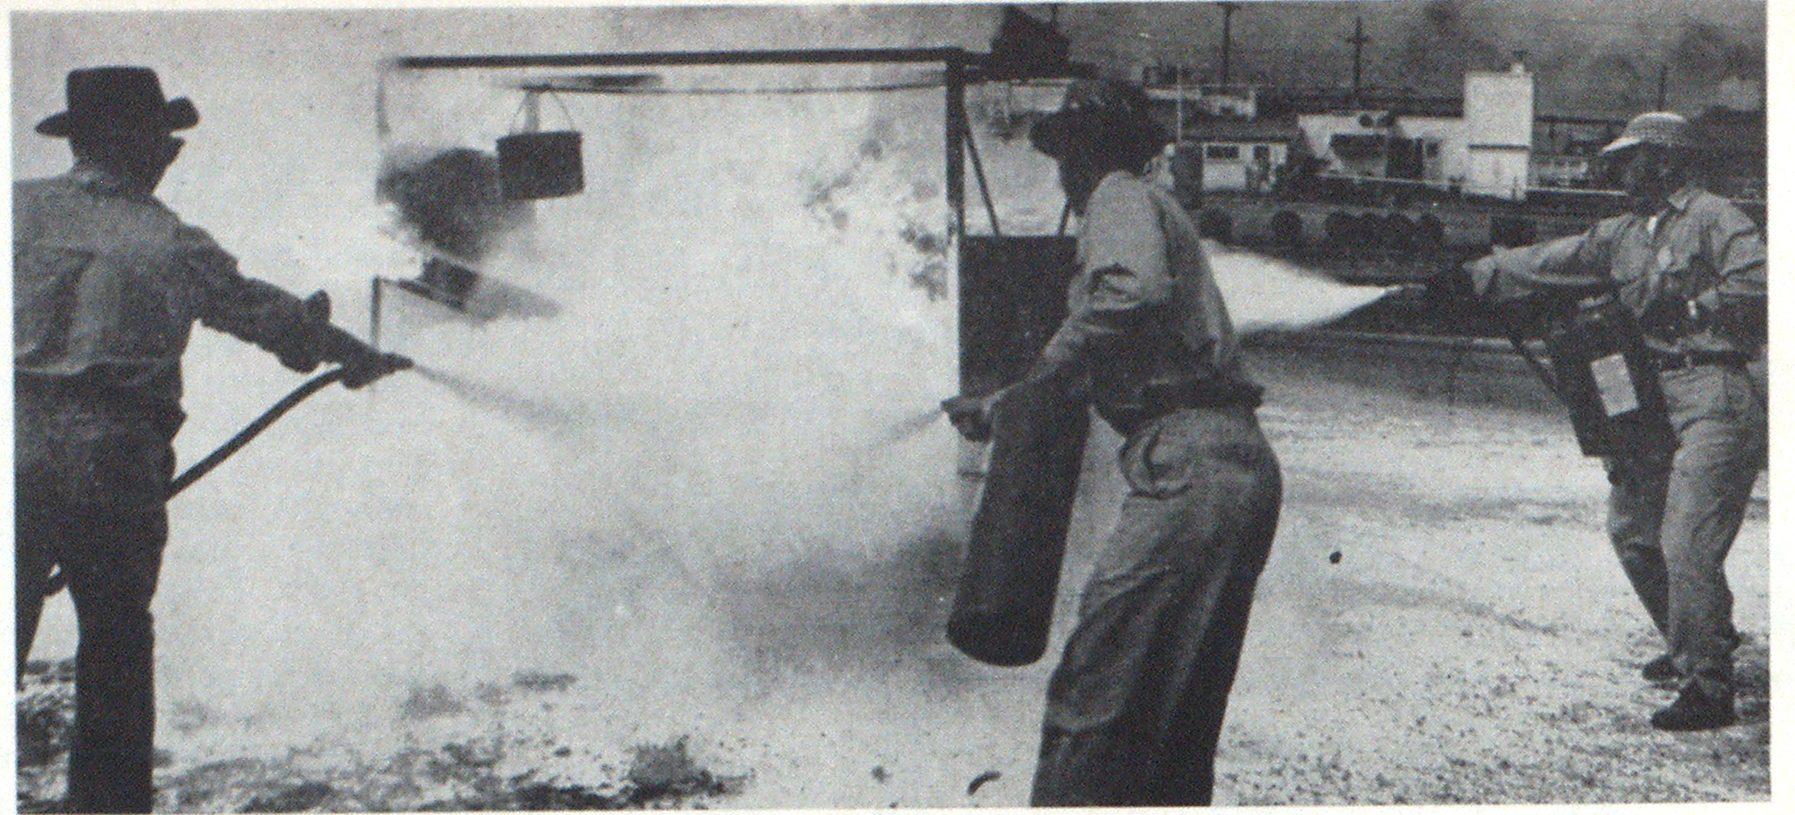 Three trainees attack a simulated industrial fire. The setup is designed to approximate fire in a dip tank